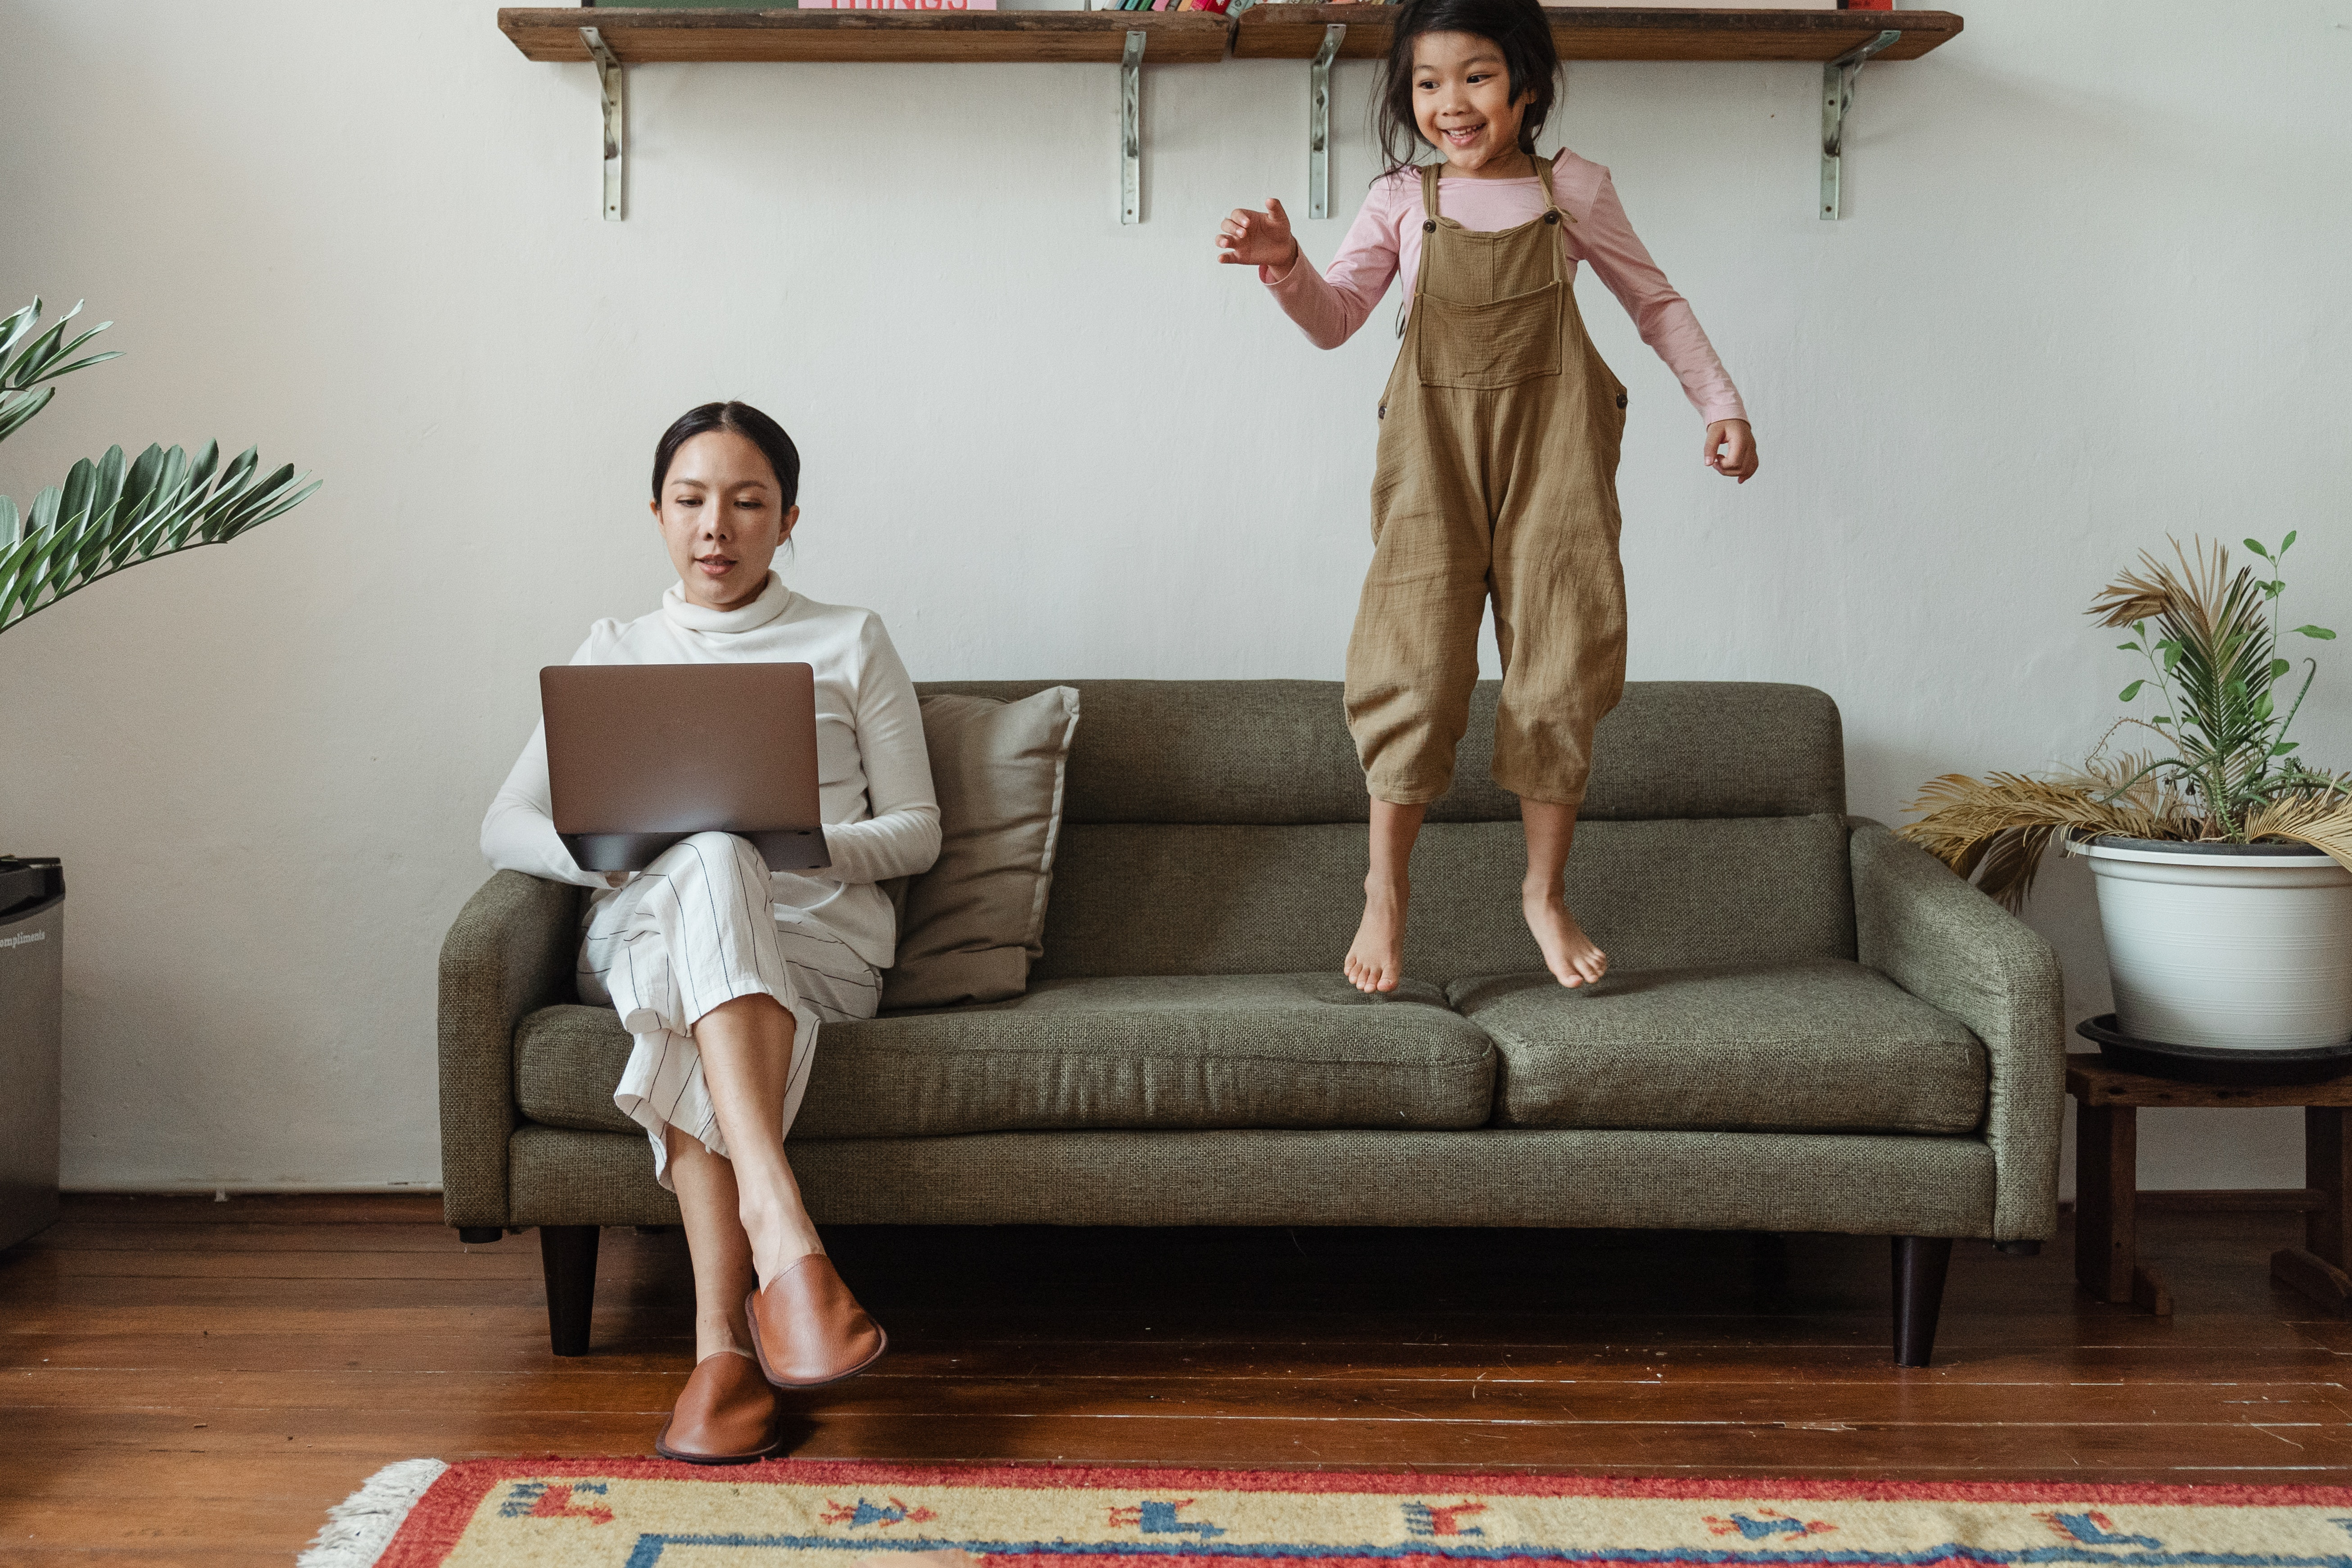 Woman on laptop participating in a Virtual Event at home while child jumps on couch | Global agency, BCD Meetings & Events